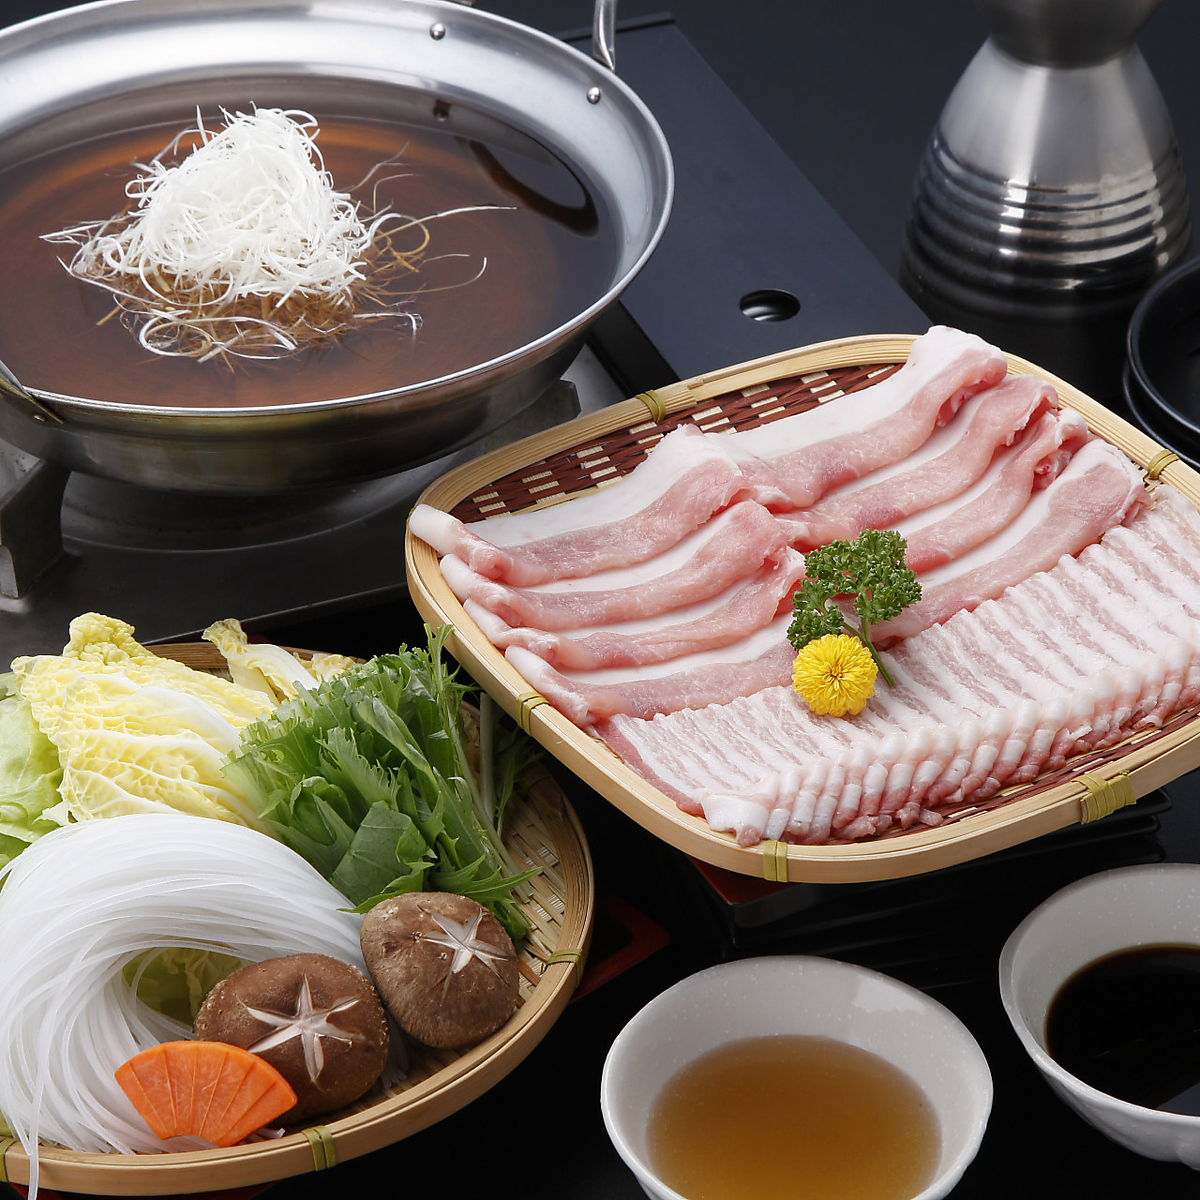 Louis Vuitt Pig Shabu-shaba 1 servings